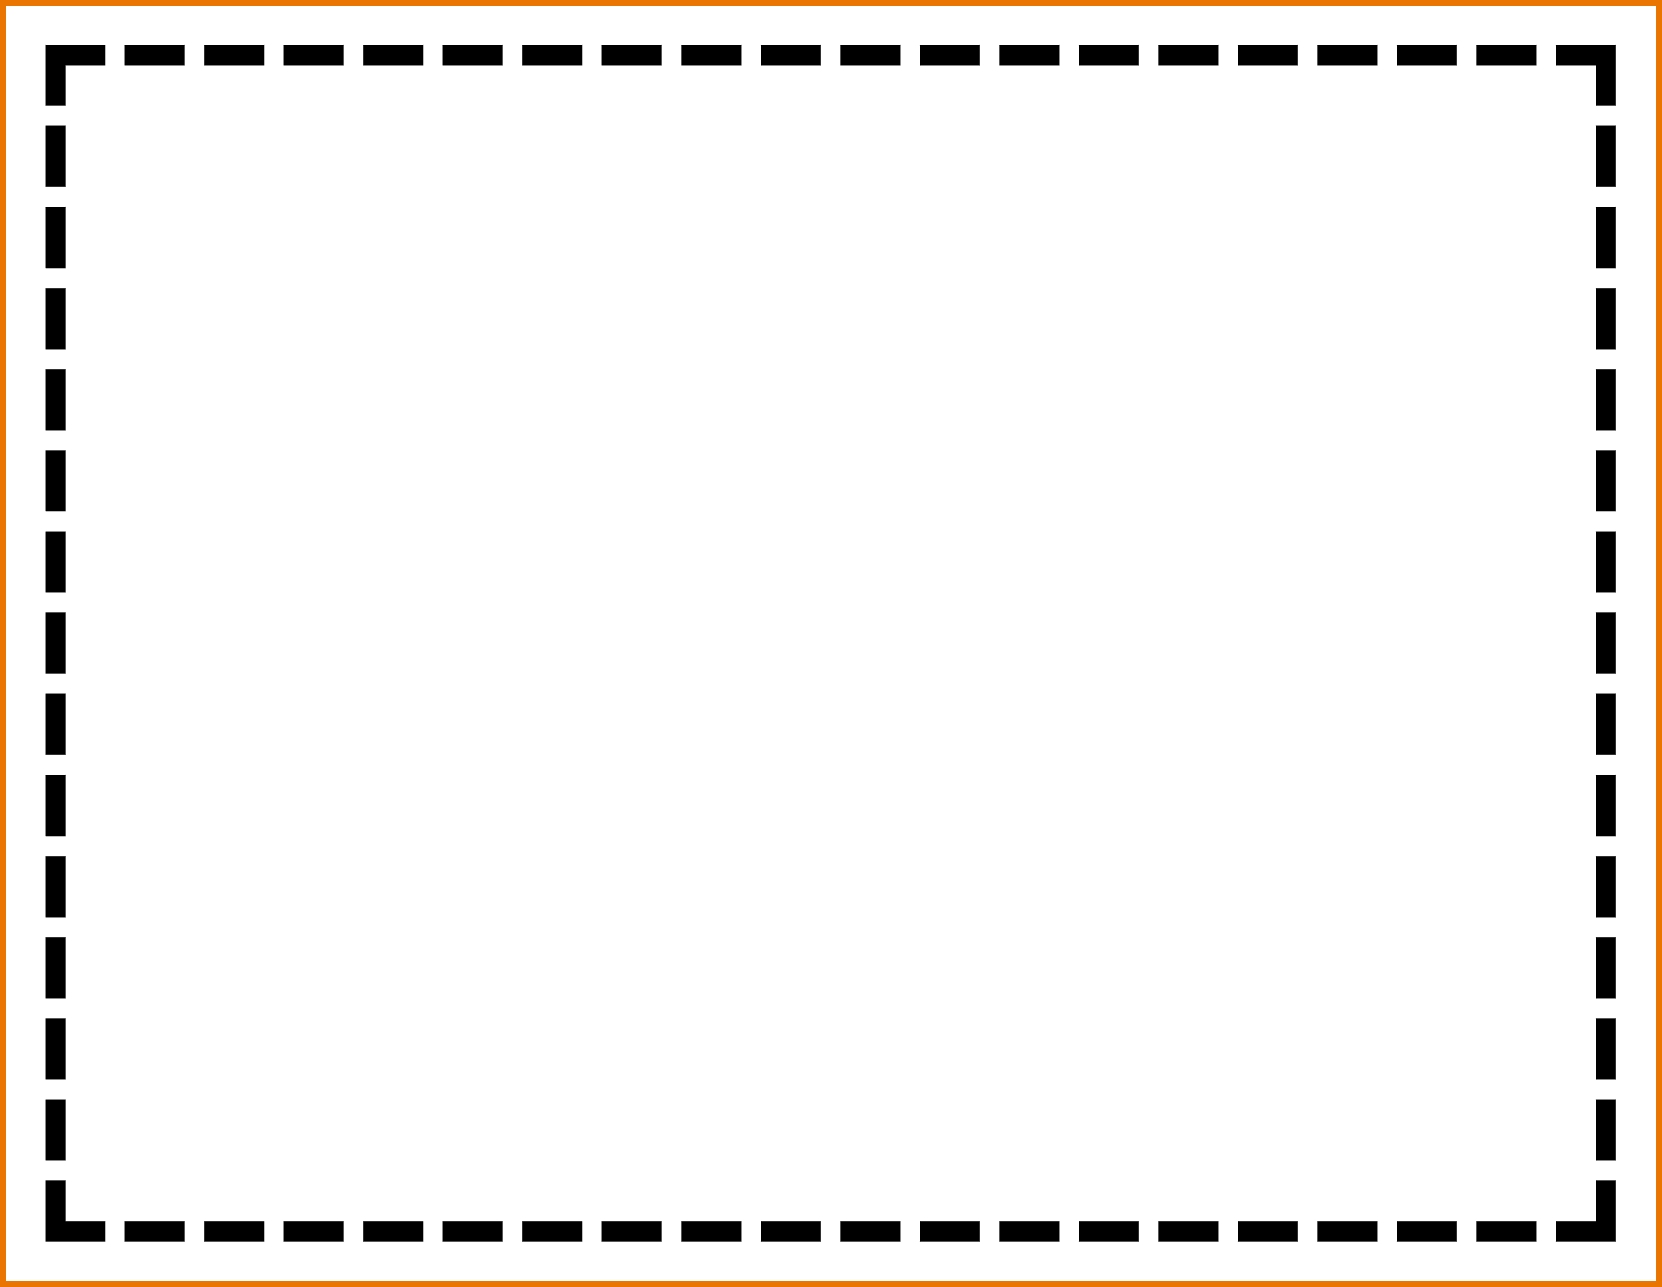 Blank Coupon Png, png collections at sccpre.cat.